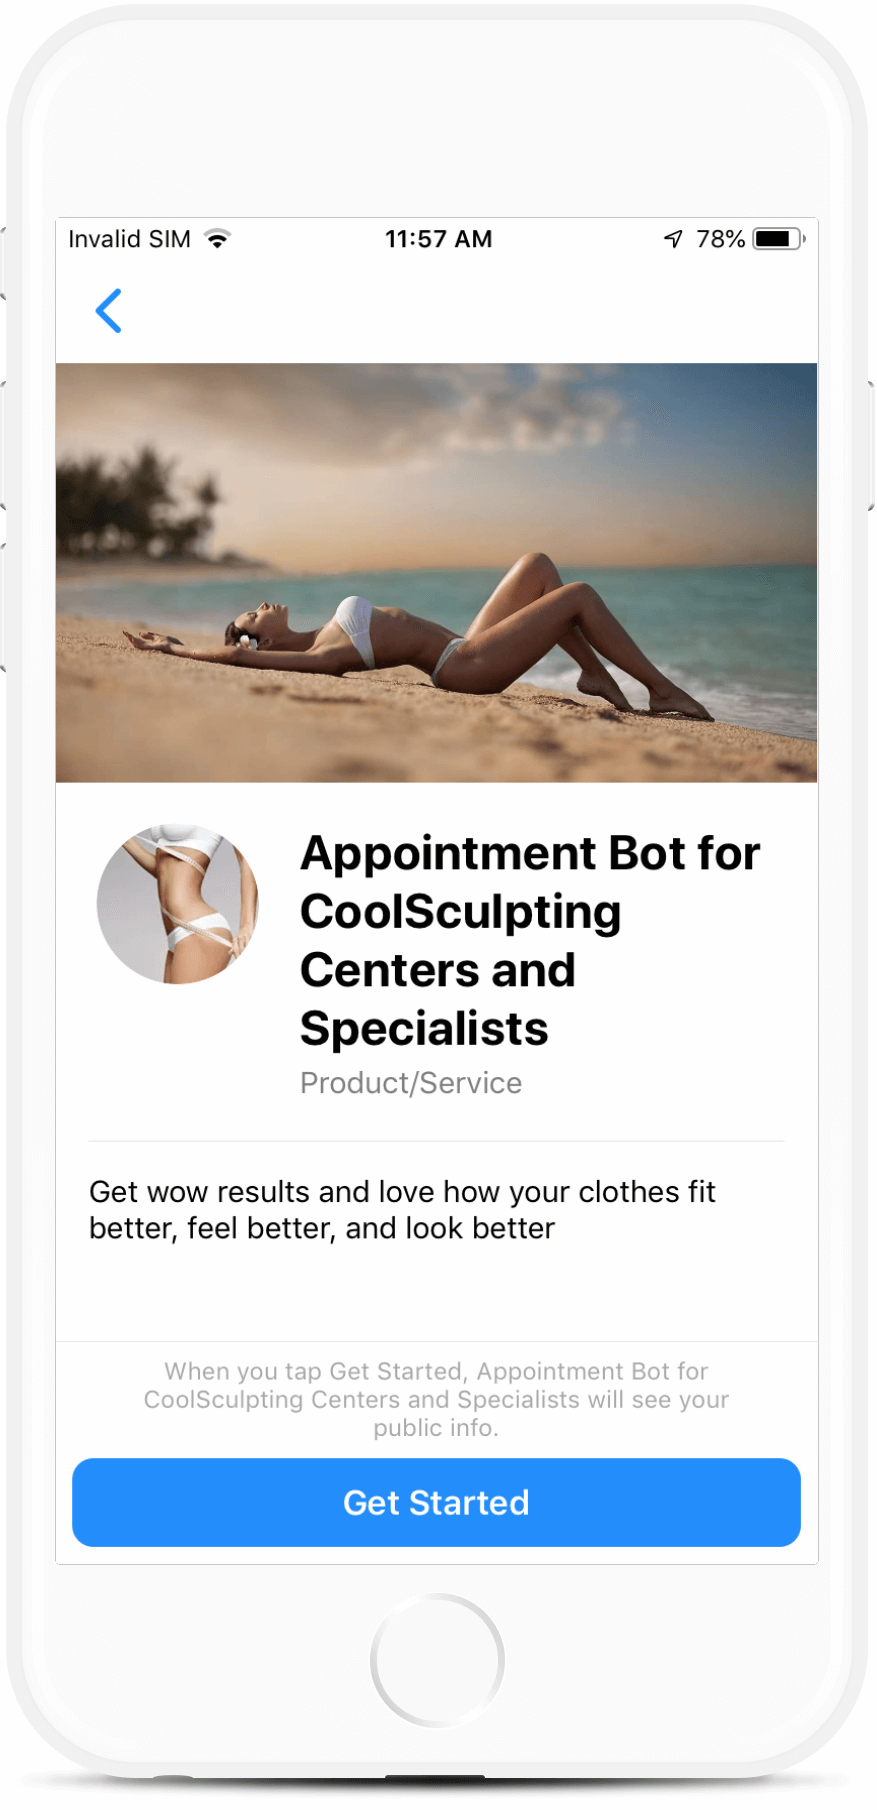 Appointment Bot for CoolSculpting Centers